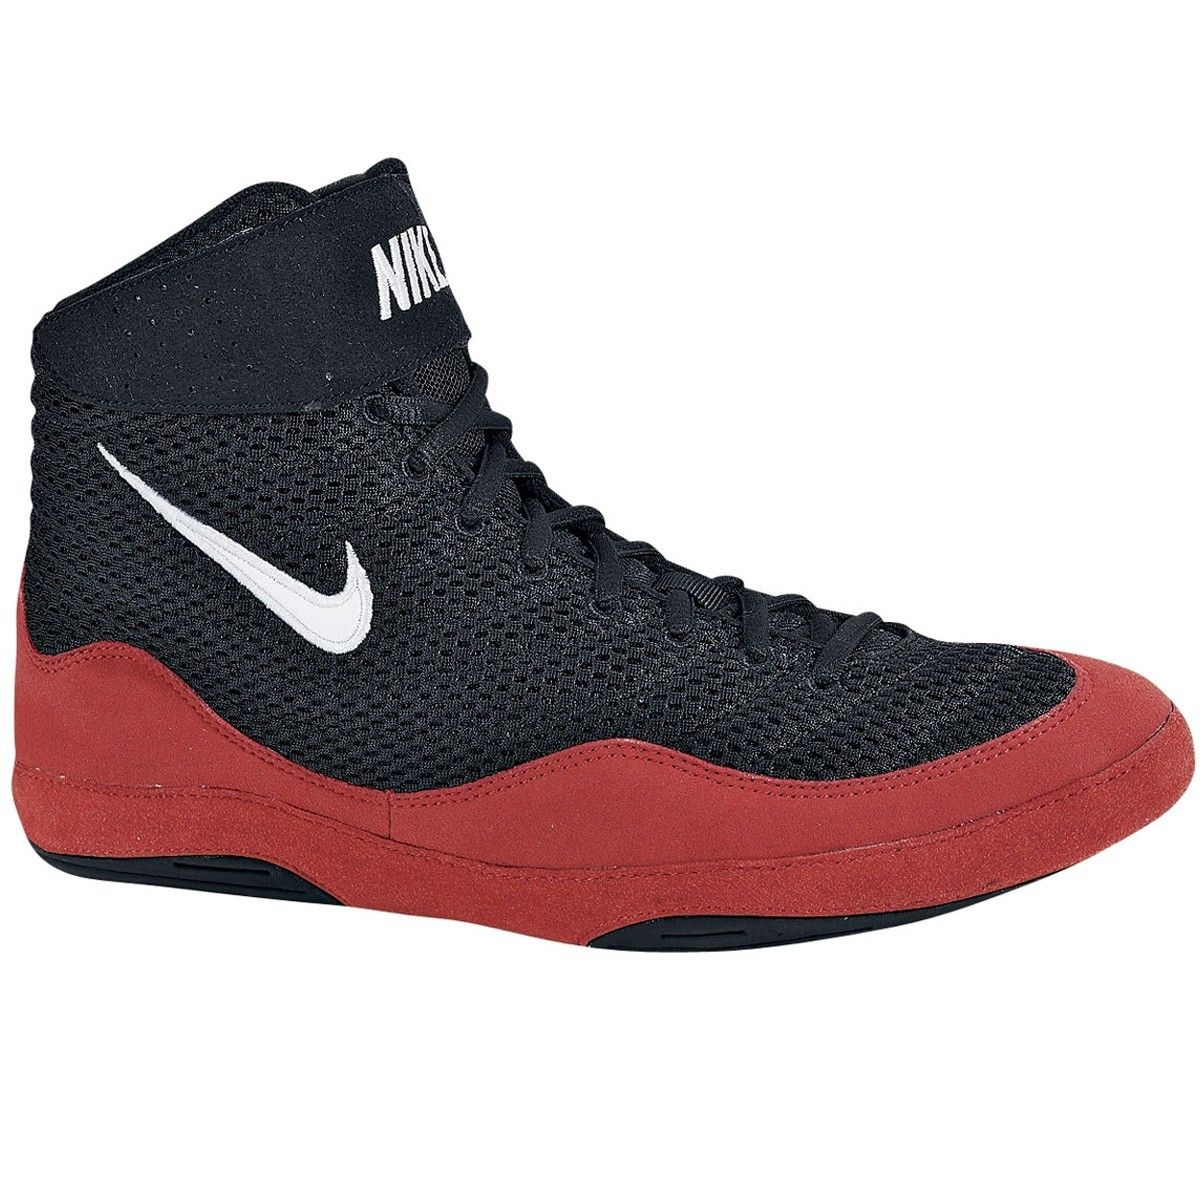 Mens Nike Inflict Wrestling Shoe Black/Game Red/White Size 8 Breathable  mesh upper for freedom of movement.